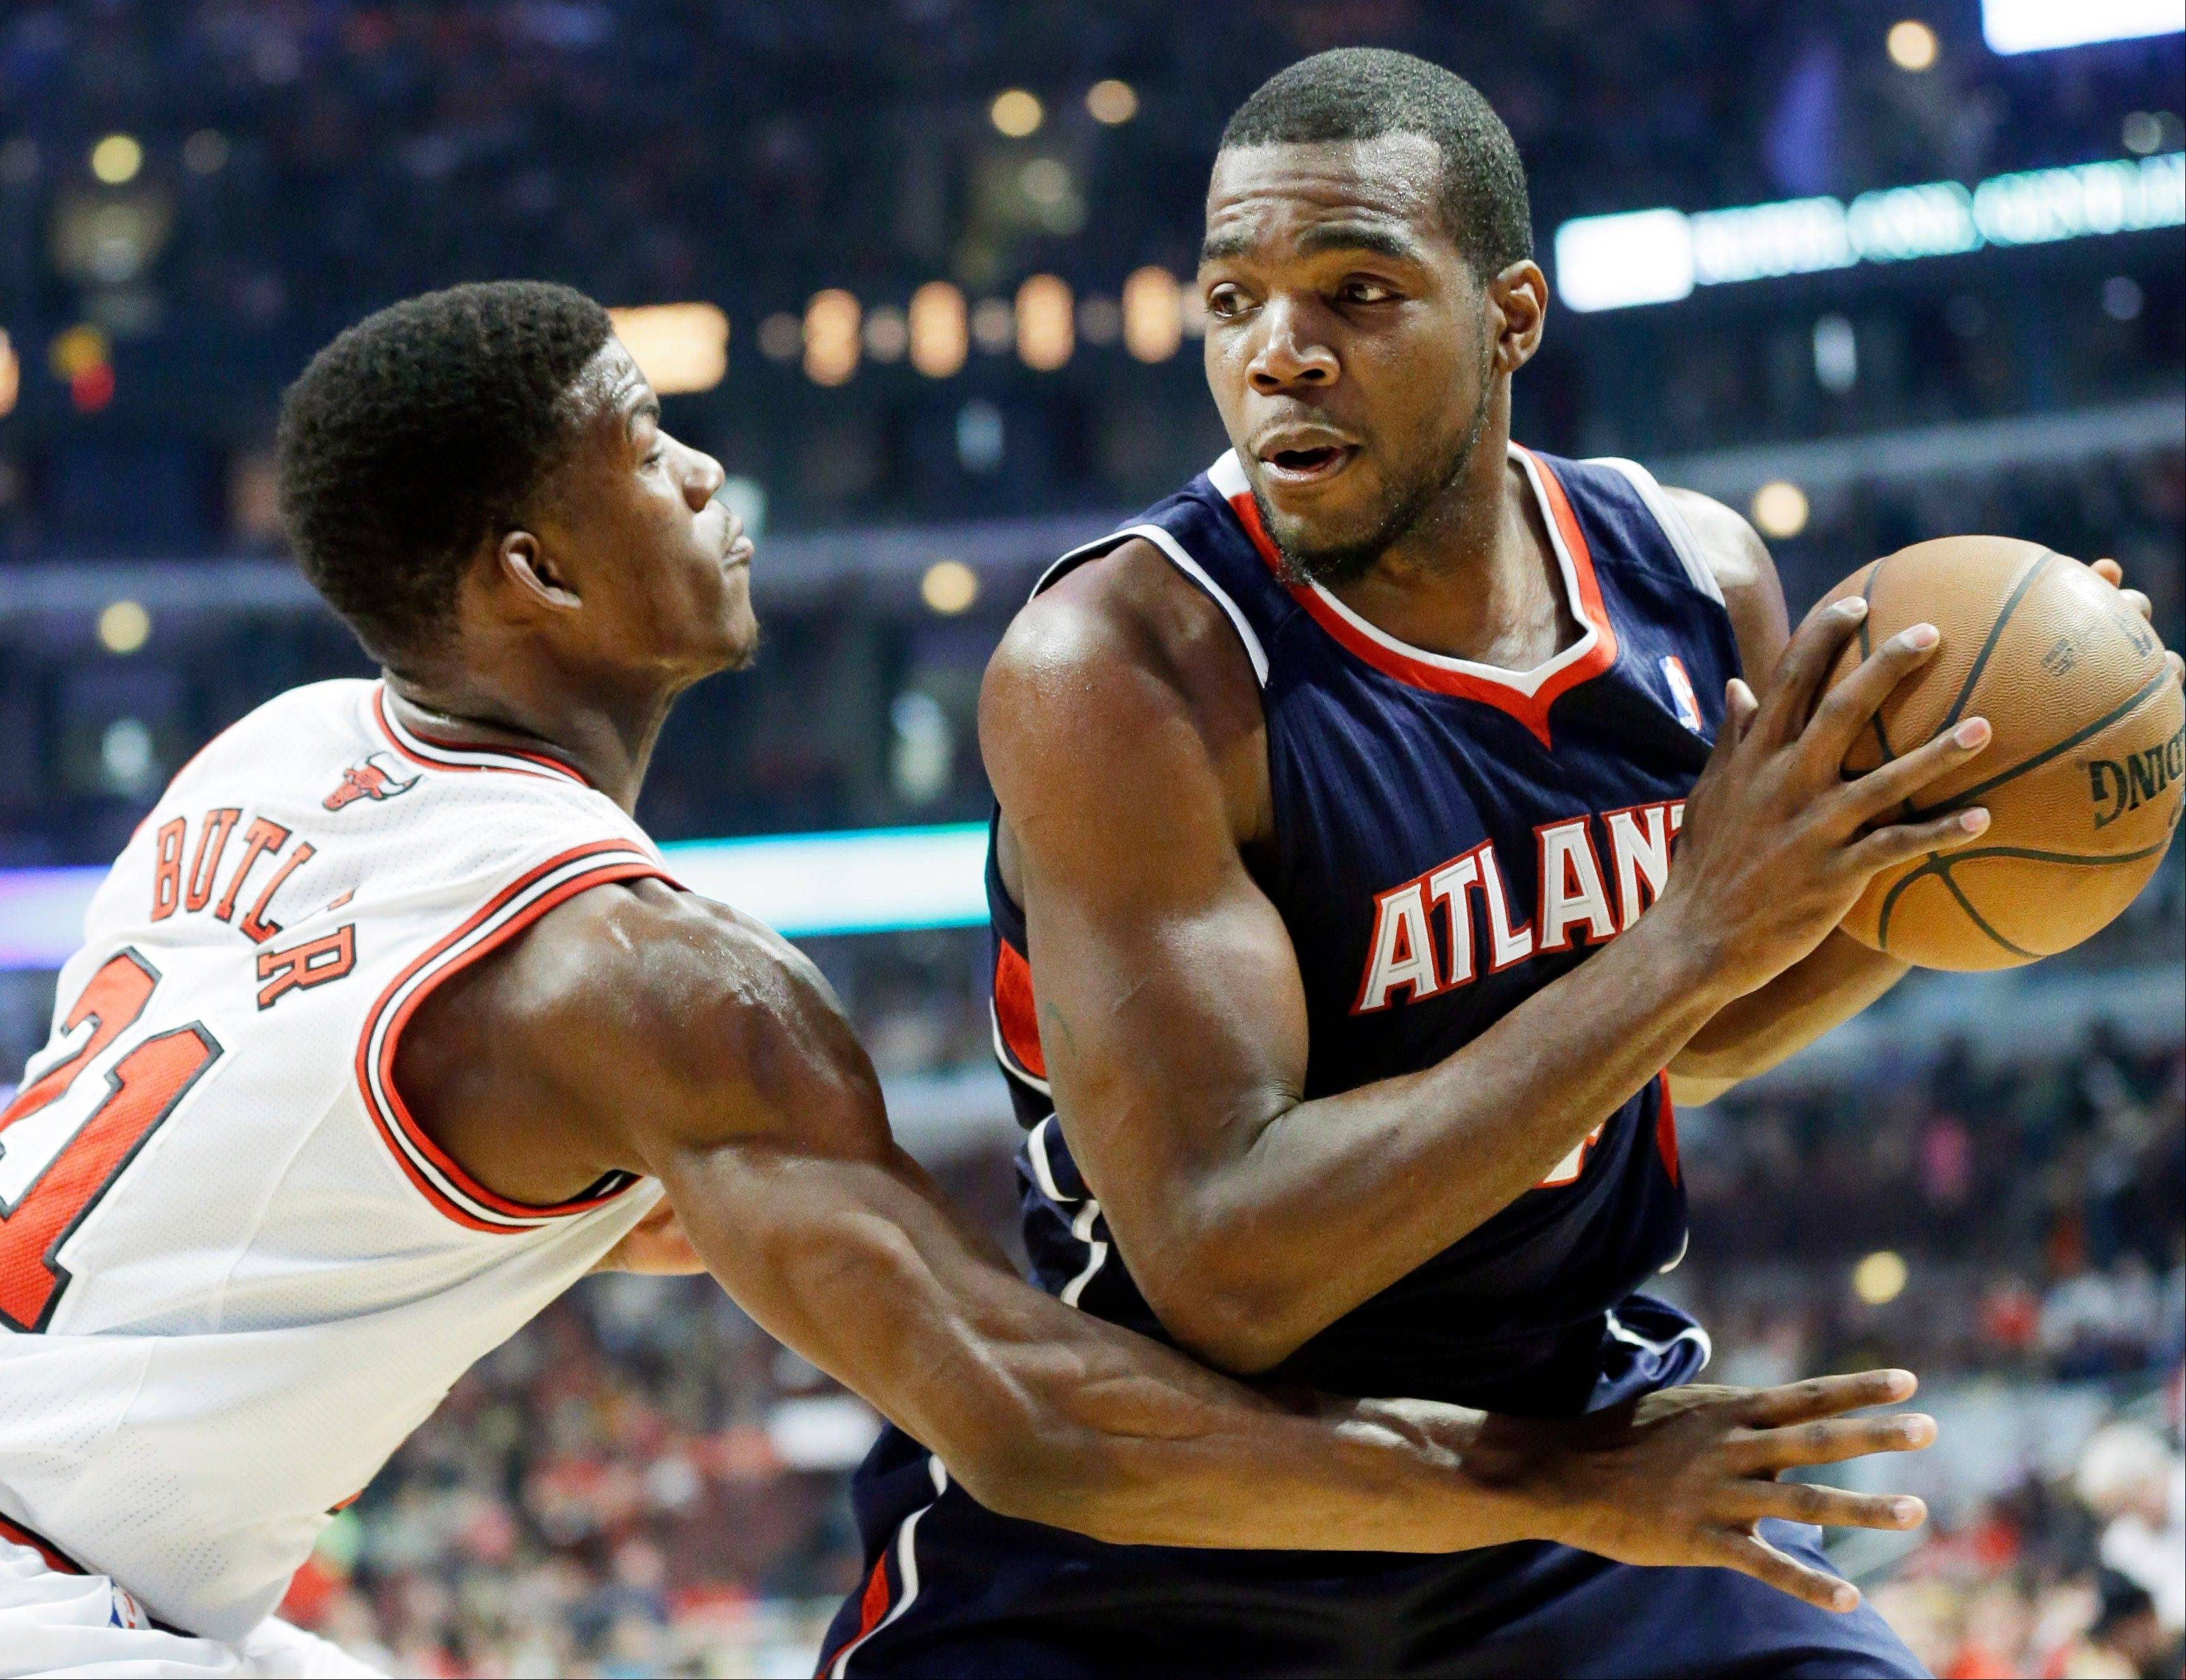 Bulls guard Jimmy Butler sticks close to Hawks forward Paul Millsap as Millsap looks to pass during the Bulls� victory Saturday night.